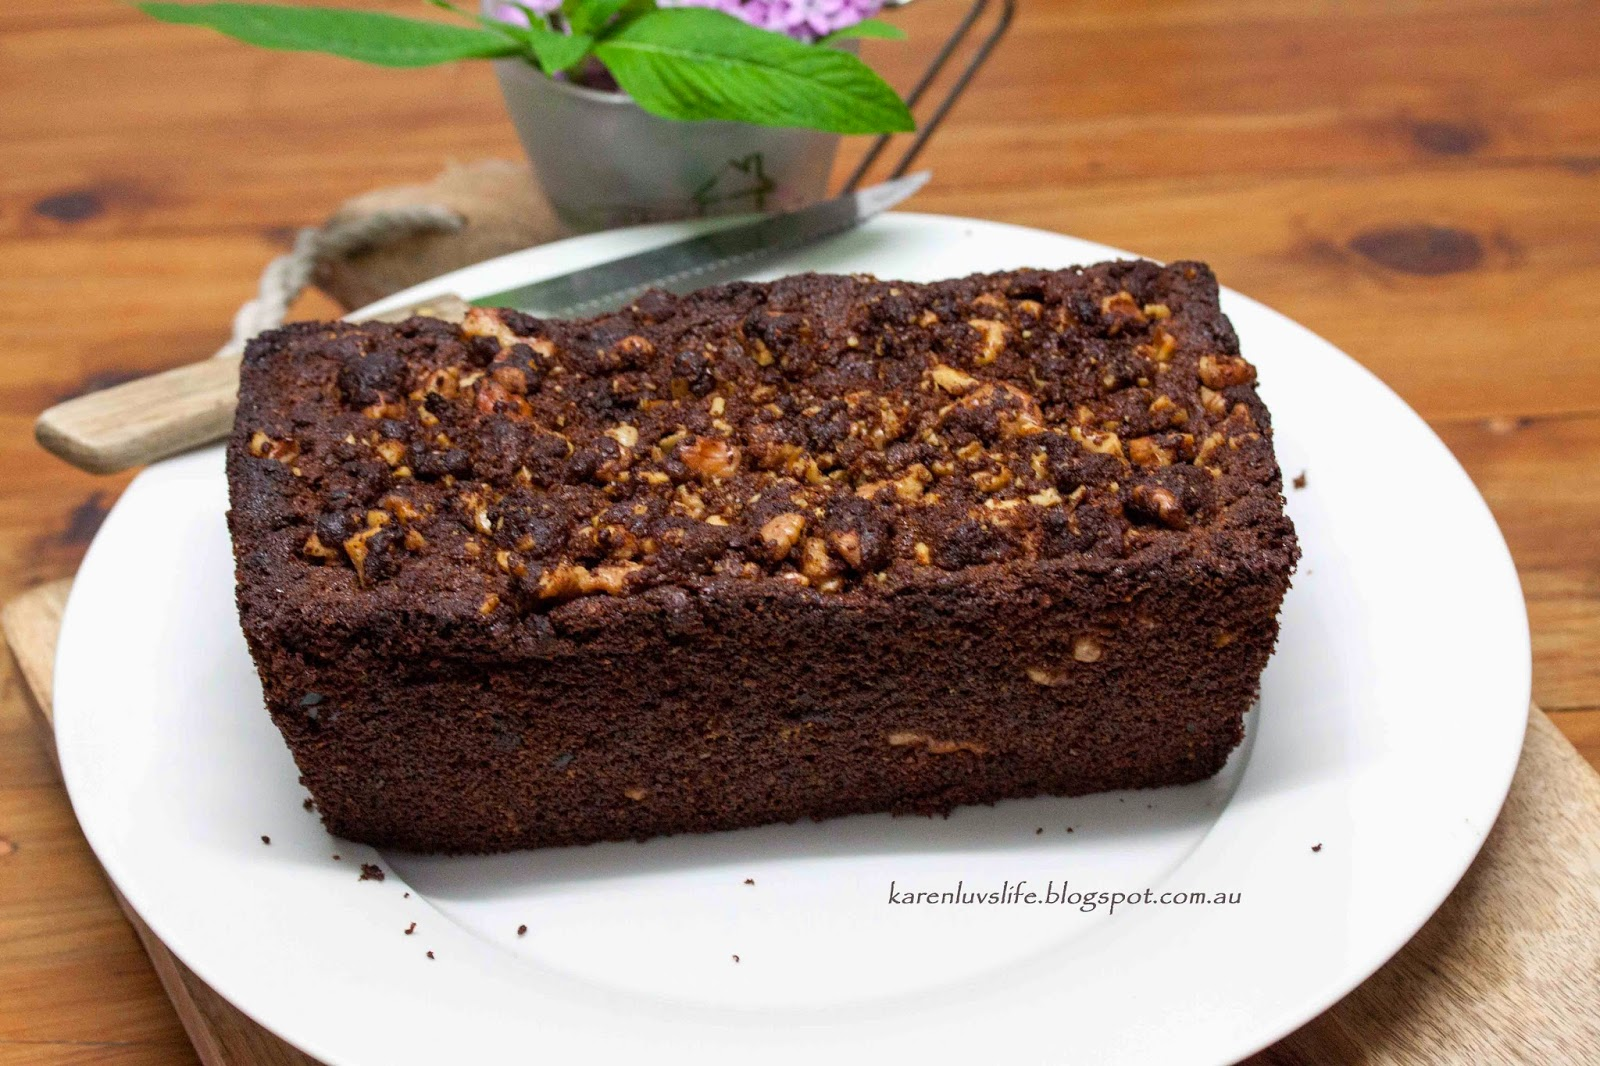 Banana Date and Walnut Cake - Grain free, Gluten free. - KARENLUVSLIFE